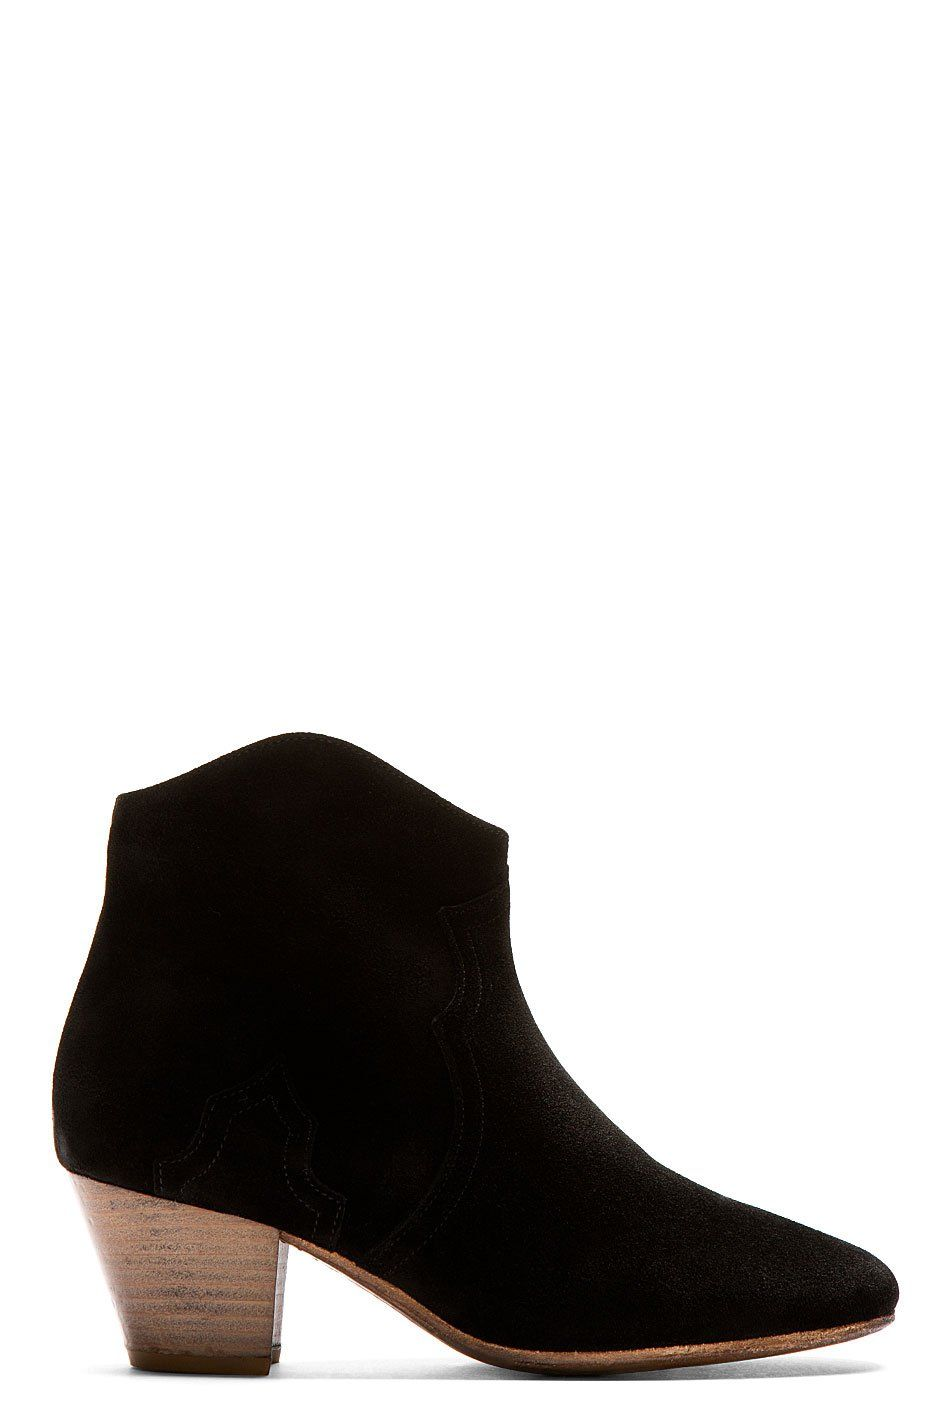 Isabel Marant Black Suede Dicker Ankle Boots on Vein - getVein.com